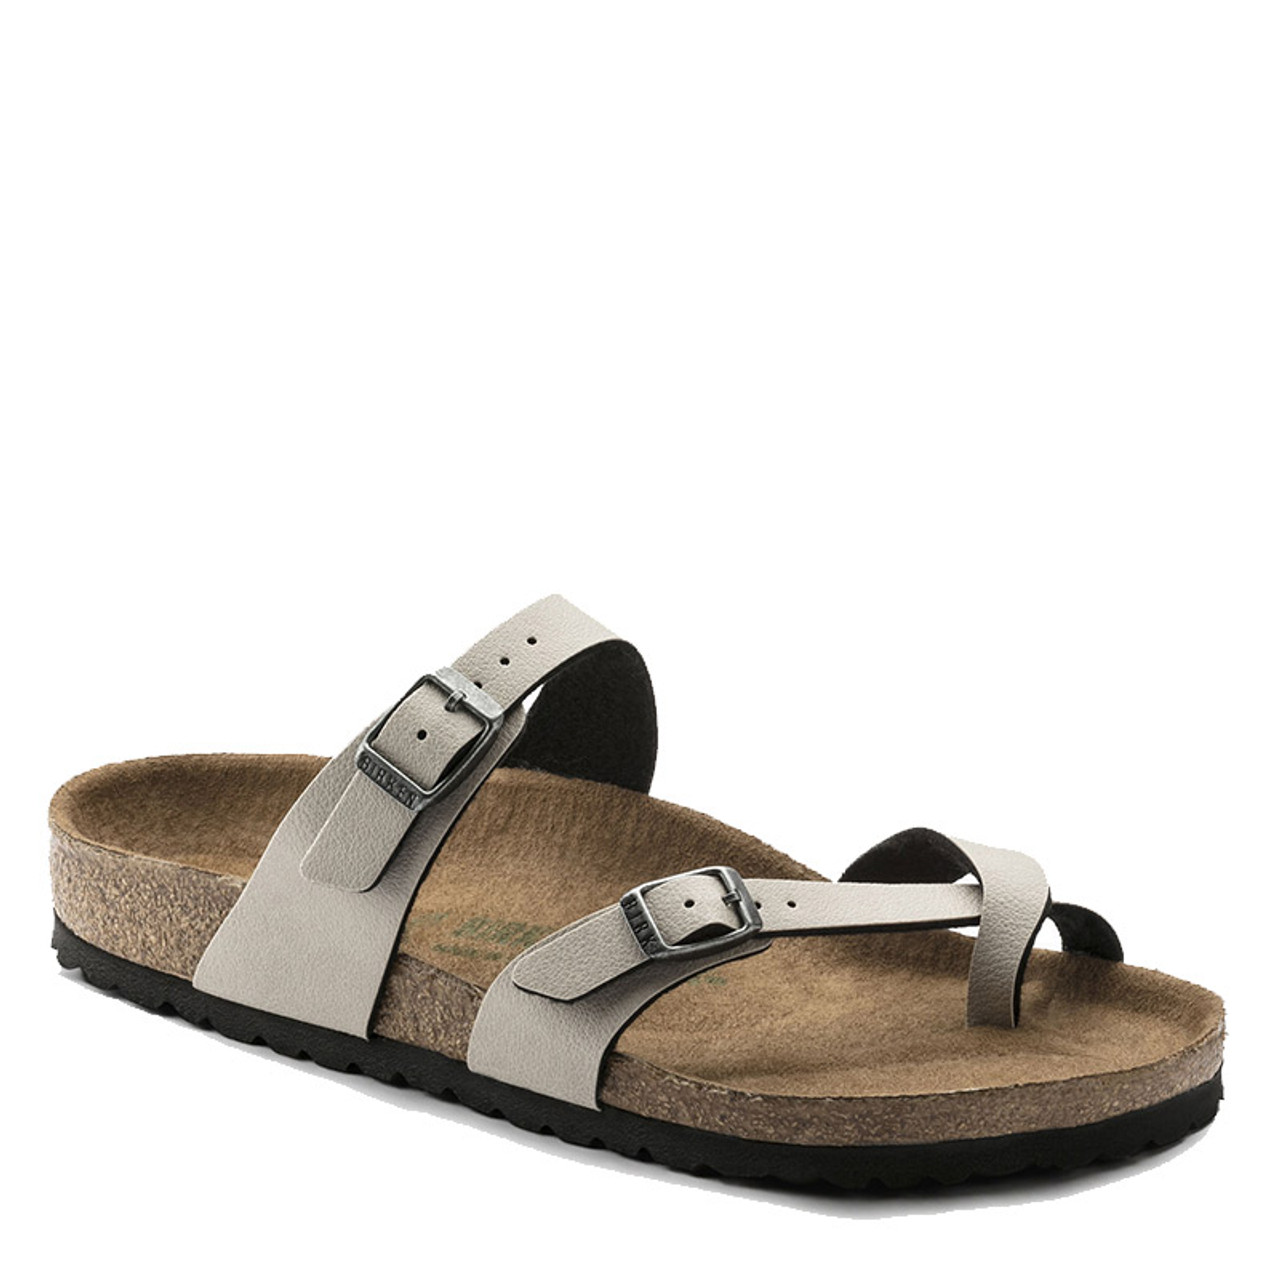 75405062c7e Birkenstock MAYARI VEGAN Sandals - Family Footwear Center